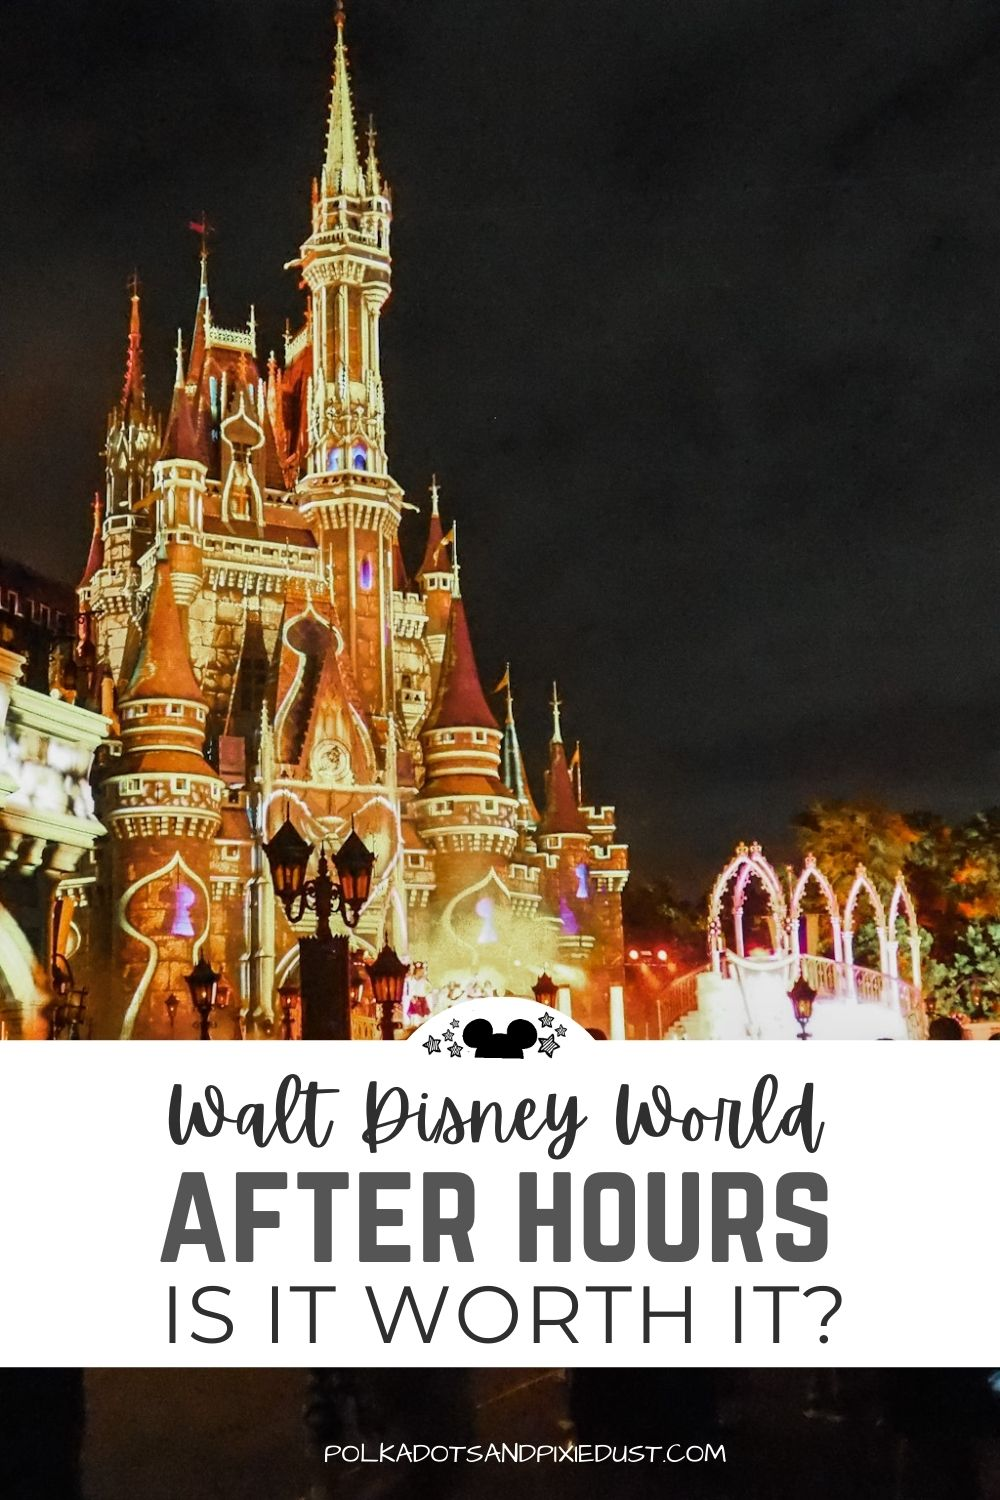 Disney's After Hours event at Magic Kingdom is expensive! Is it worth it? For a 3 hour event, with limited capacity, and complimentary snacks, here is everything you need to know about an After Hours event at Magic Kingdom Park. #polkadotpixies #disneyvacation